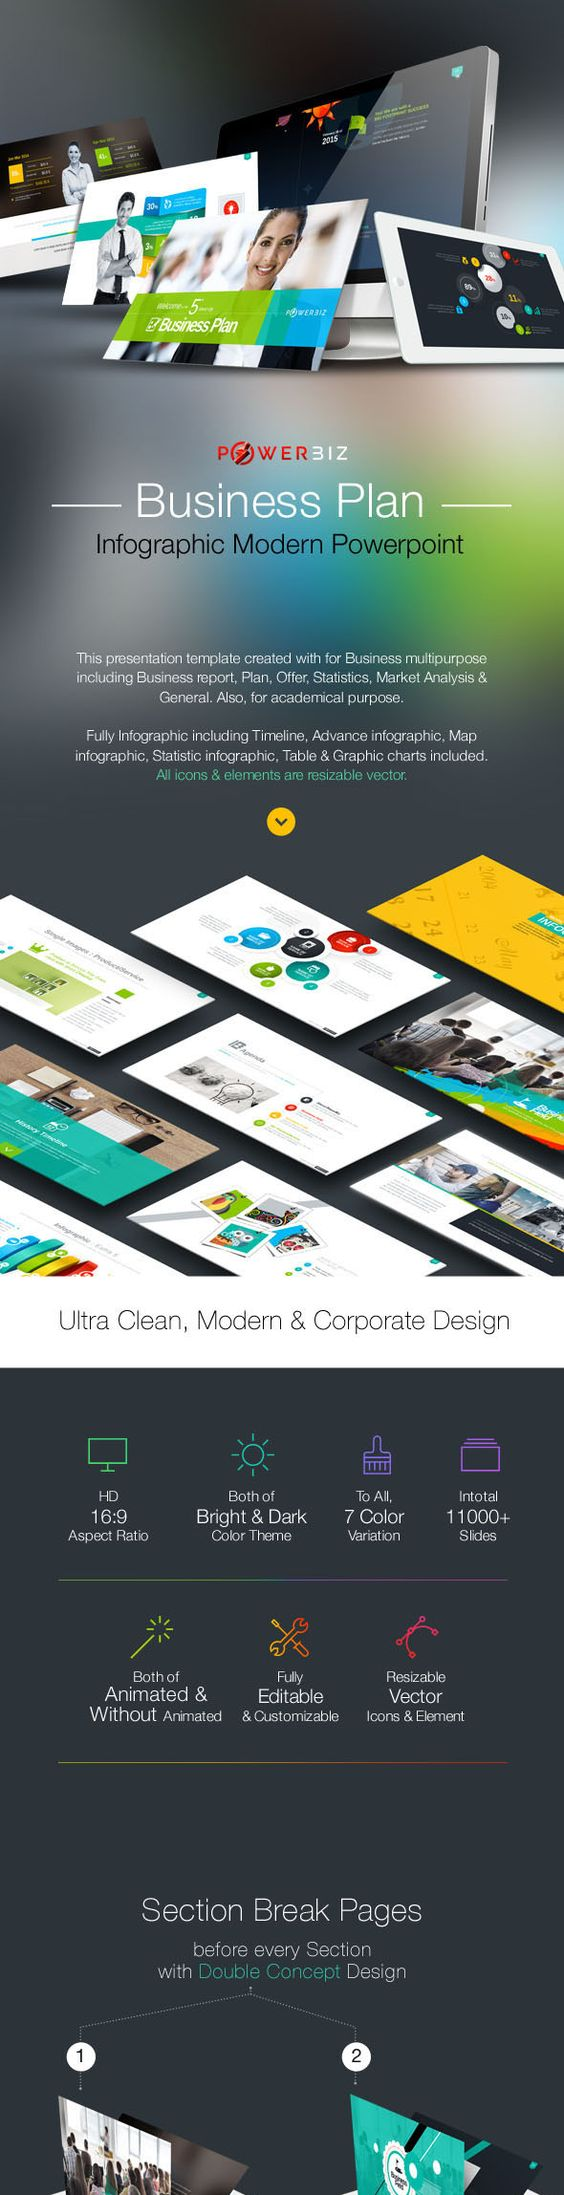 change colour presentation templates and infographic business plan report infographic multipurpose powerpoint presentation powerbiz clean creative and modern presentation